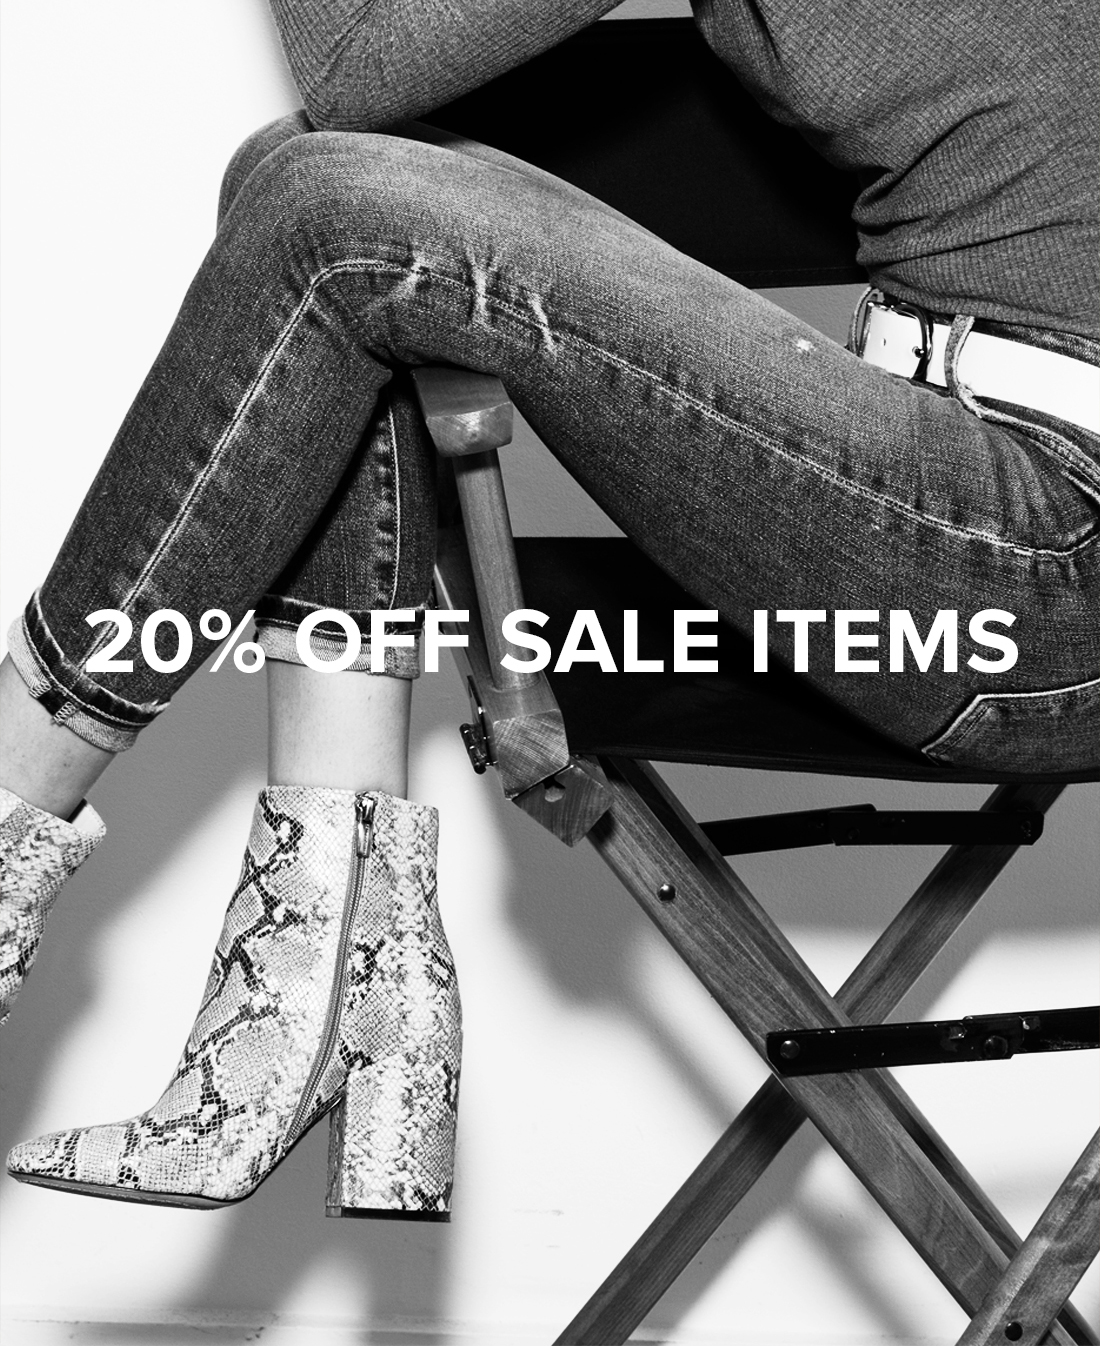 LABOR DAY SALE - 30% Off Select Styles with promo code: LABORDAY30